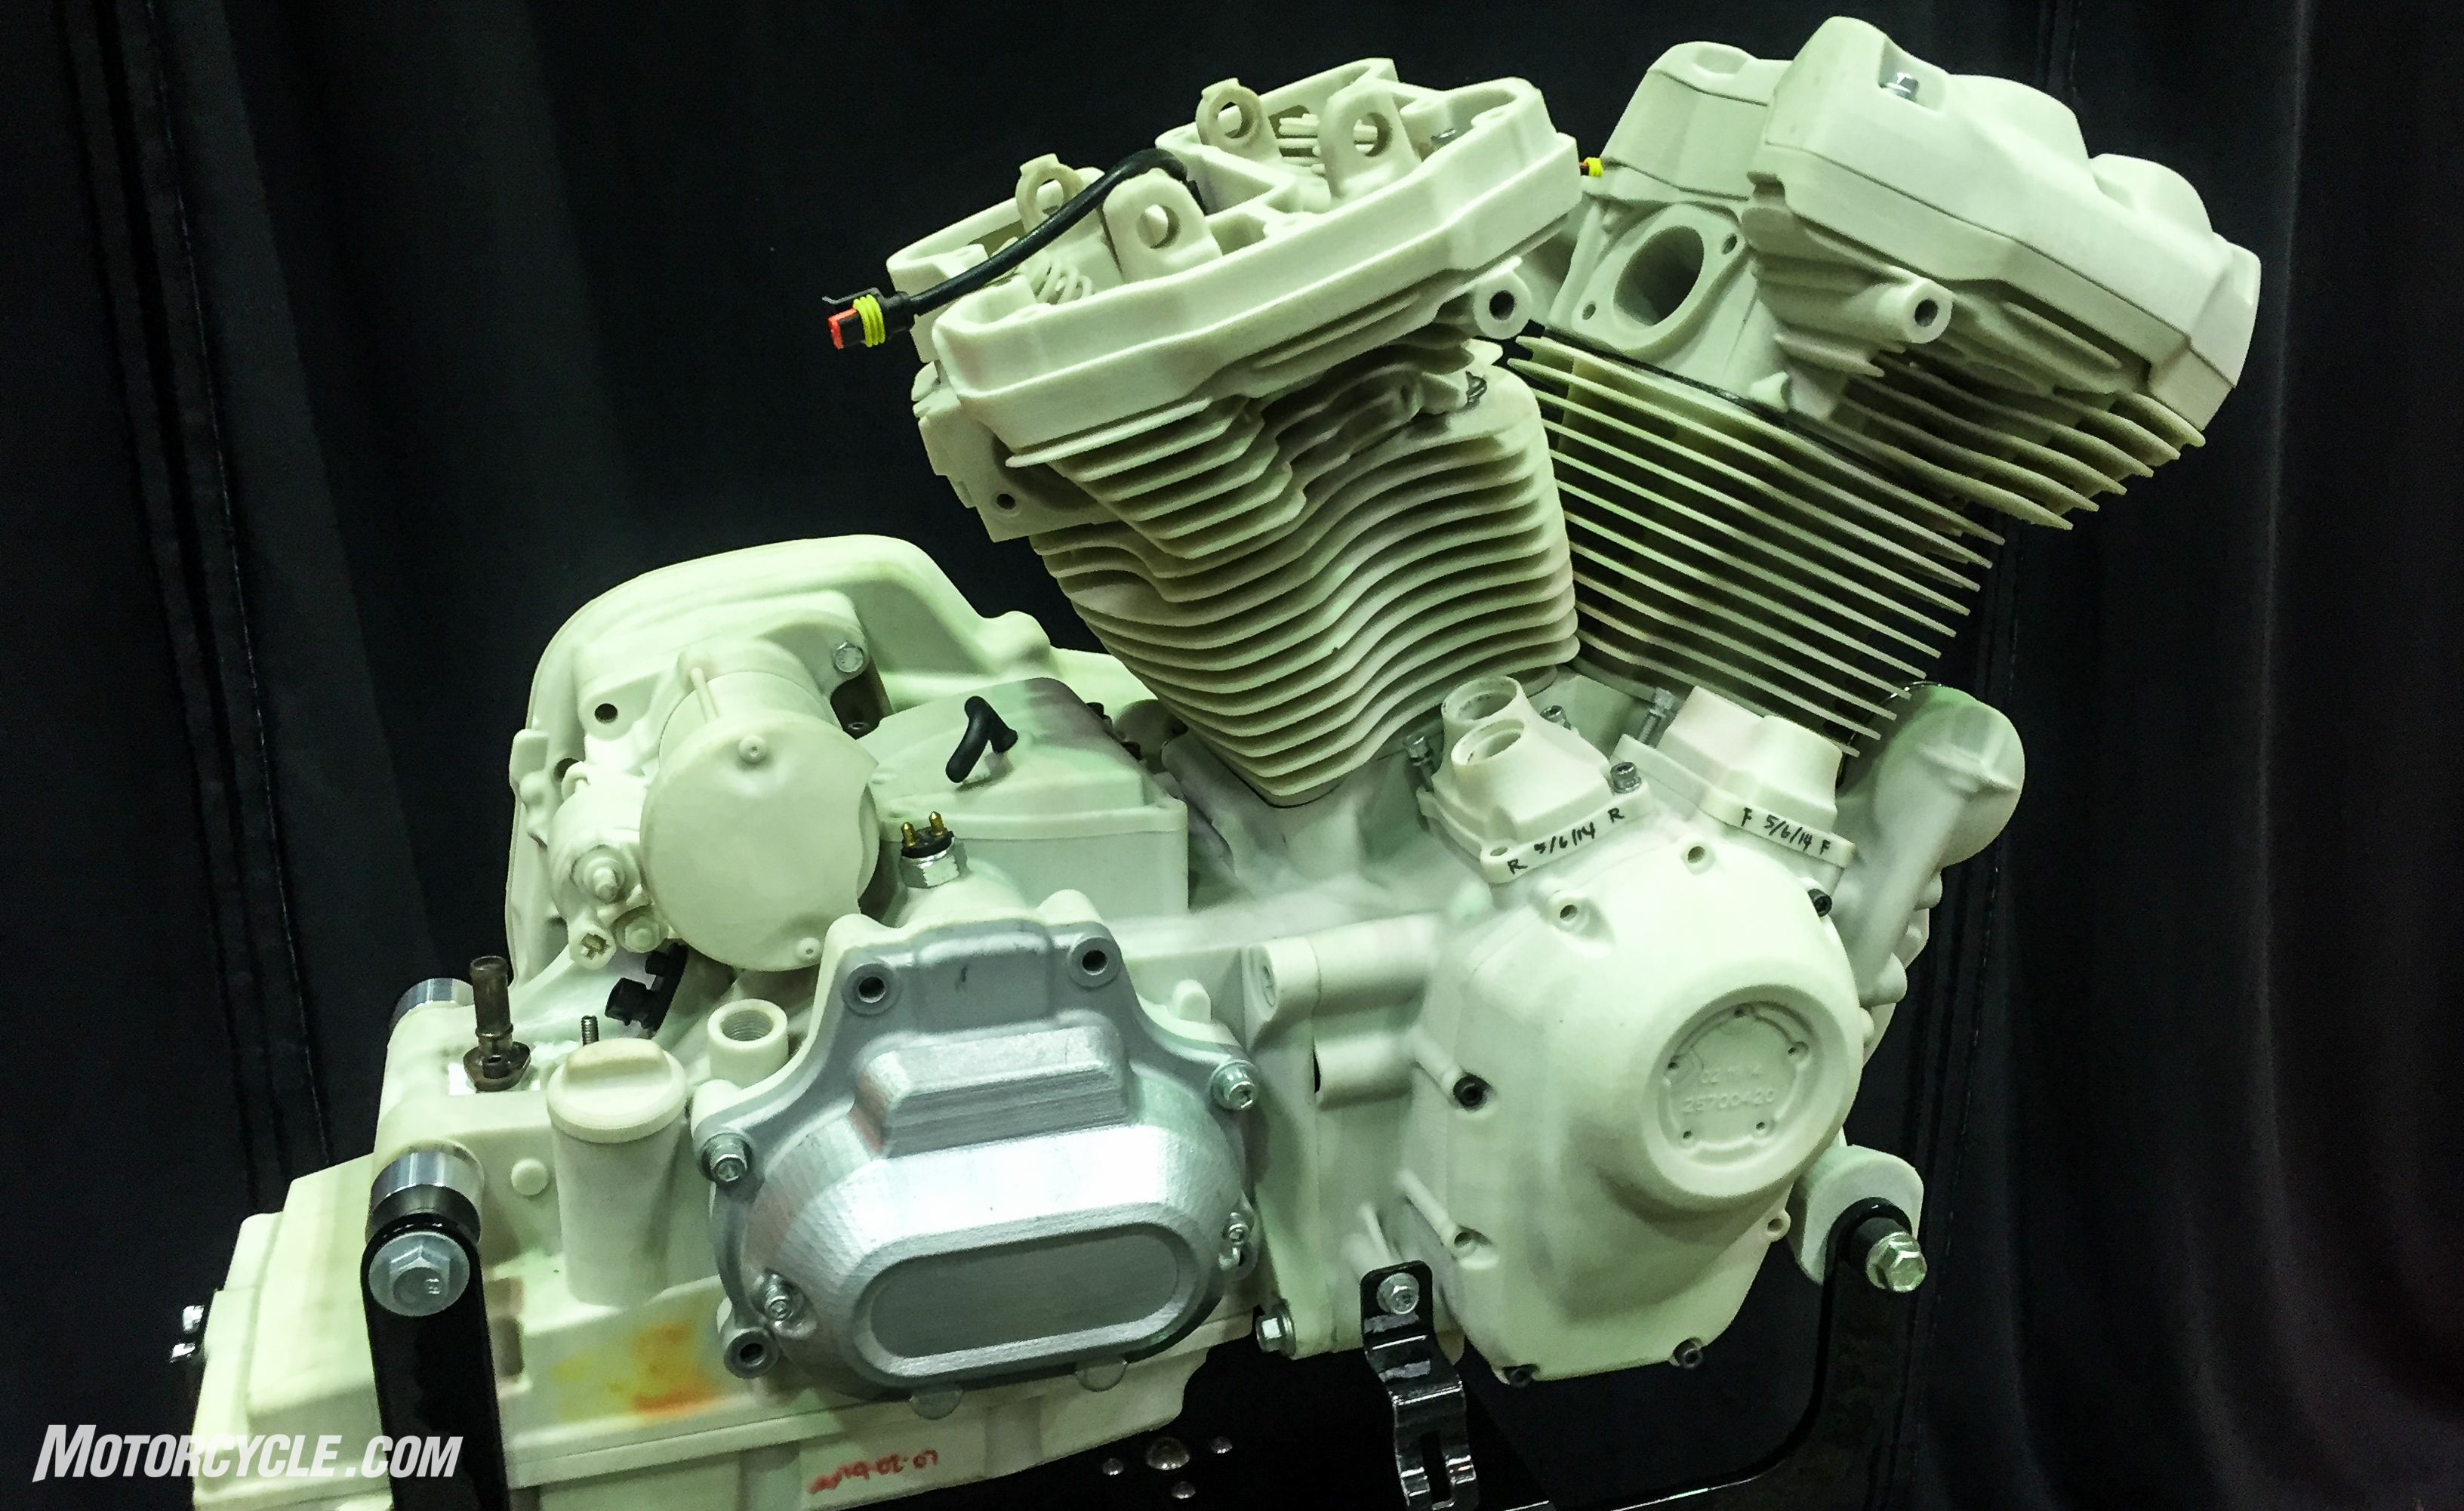 2017 Harley-Davidson Milwaukee-Eight Engines Tech Brief